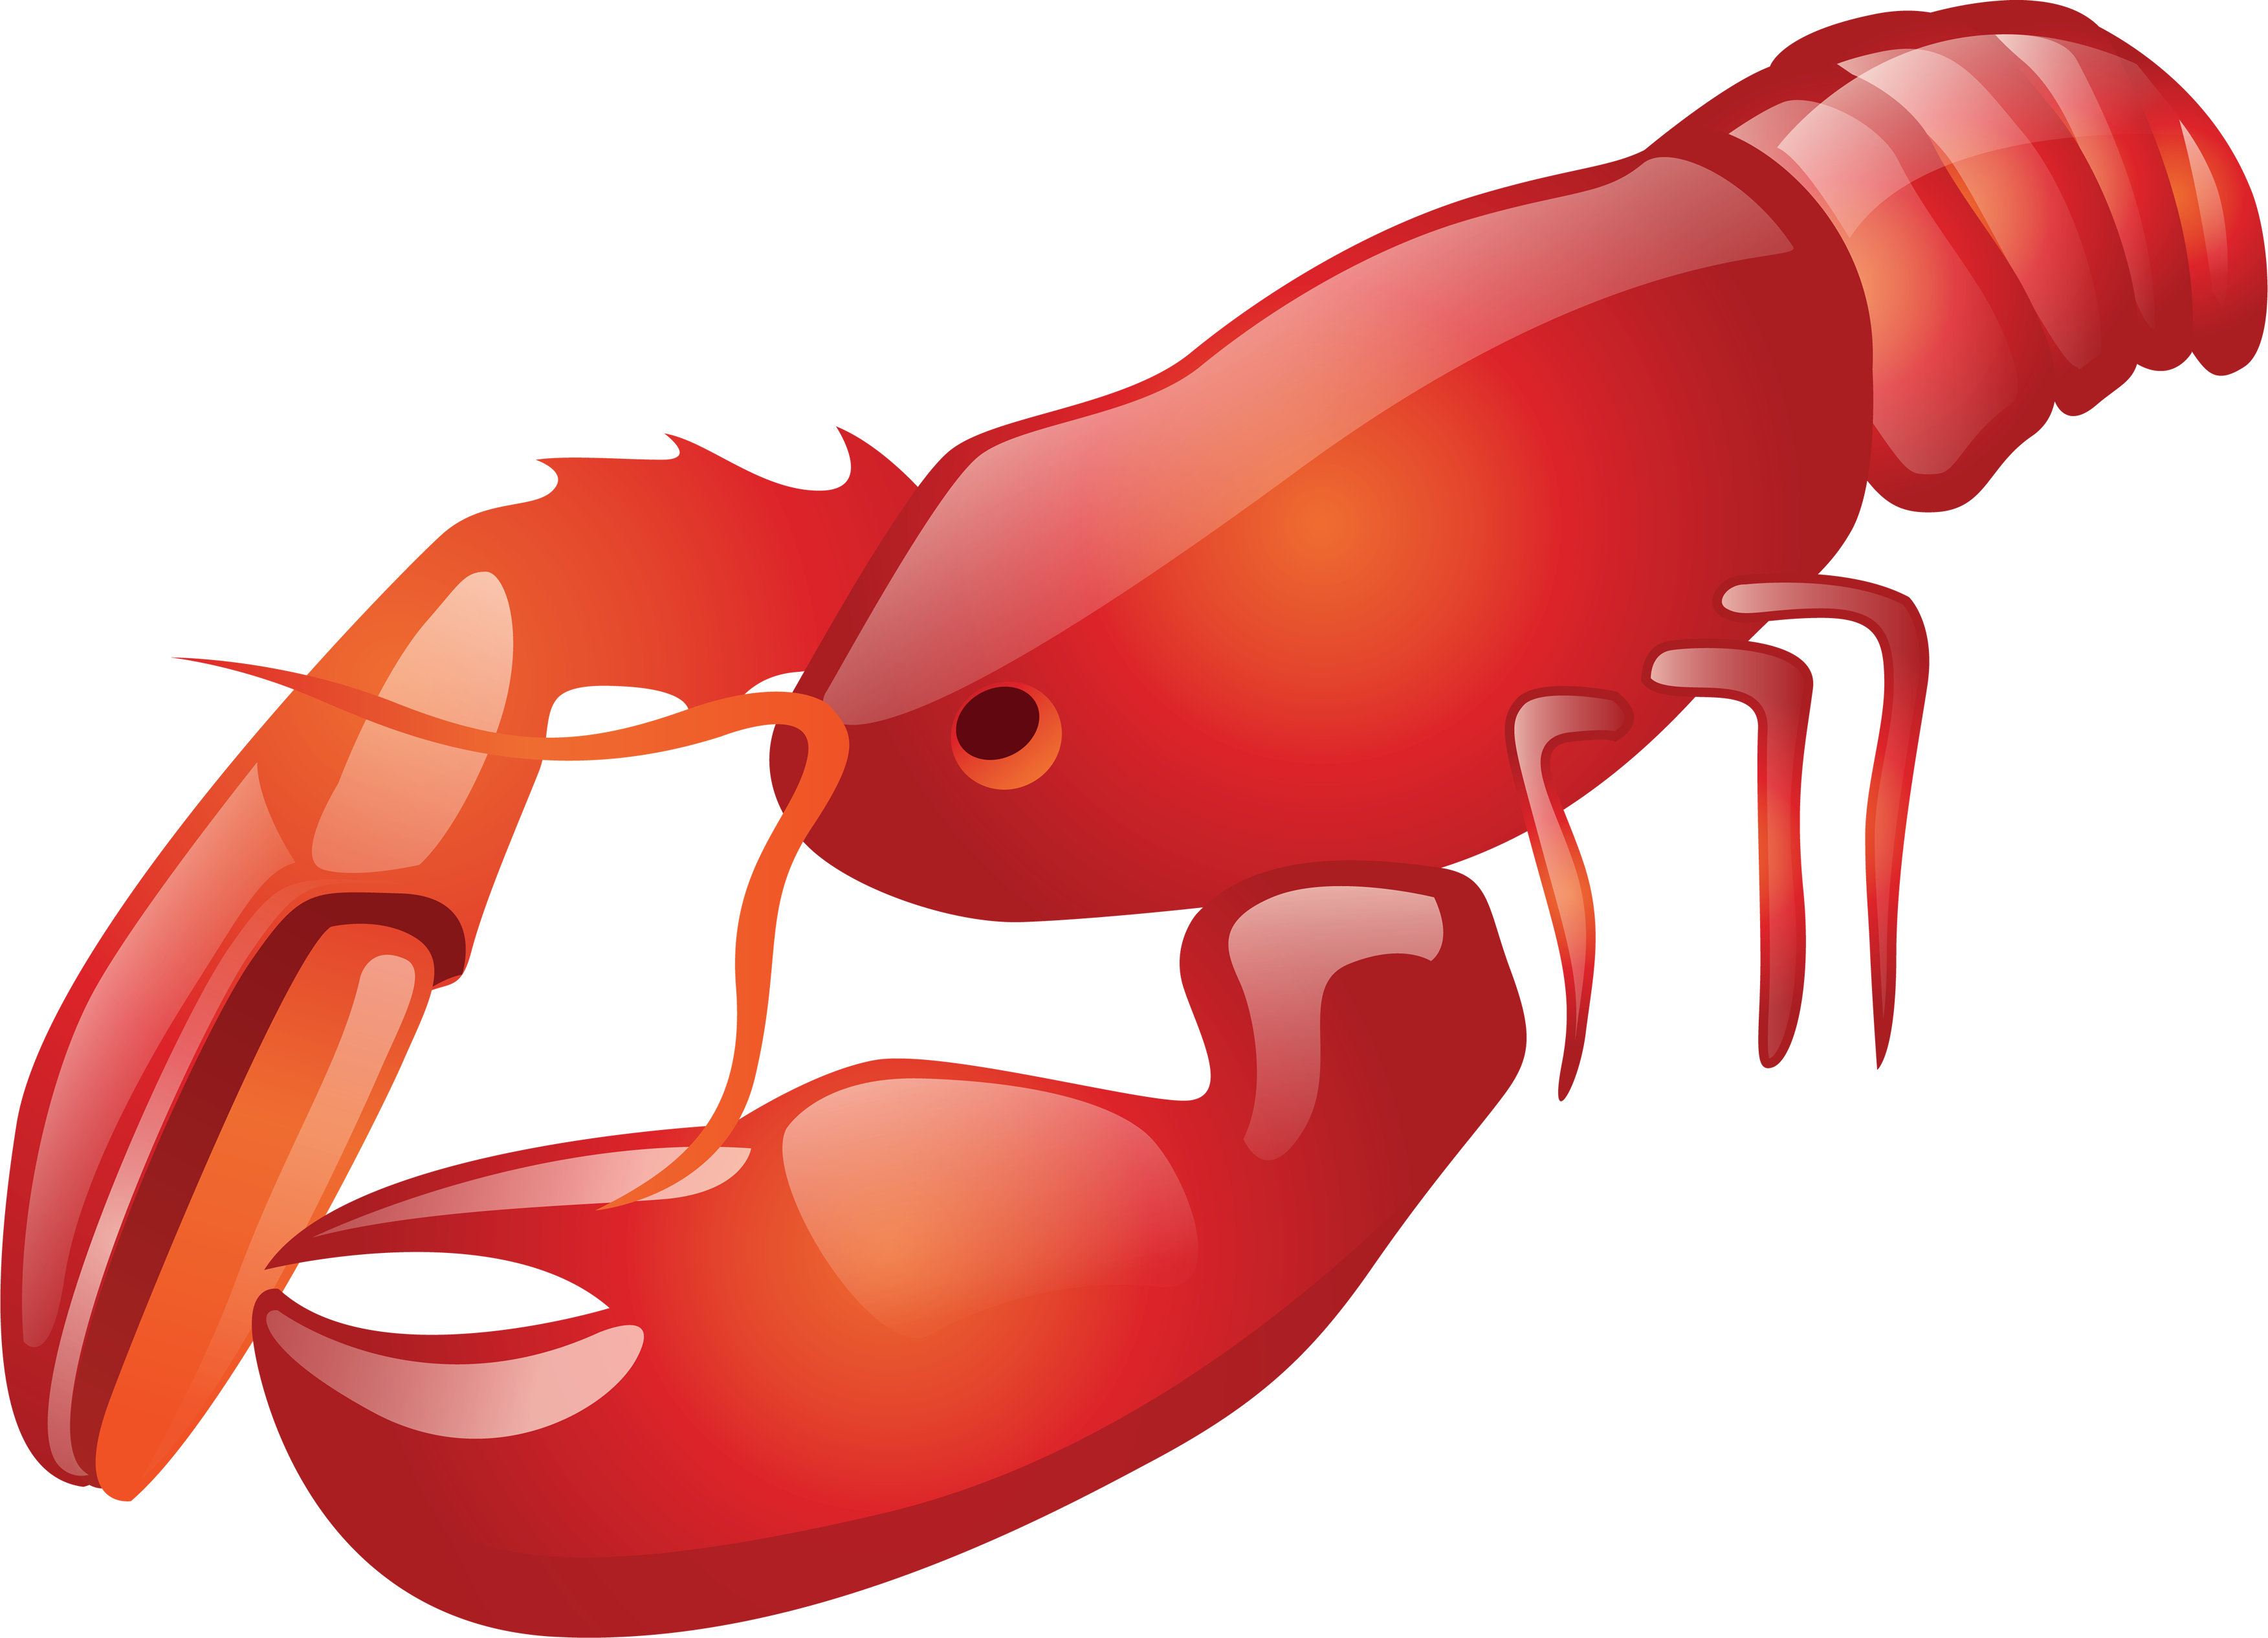 Crawfish clipart lobster. Free download best on